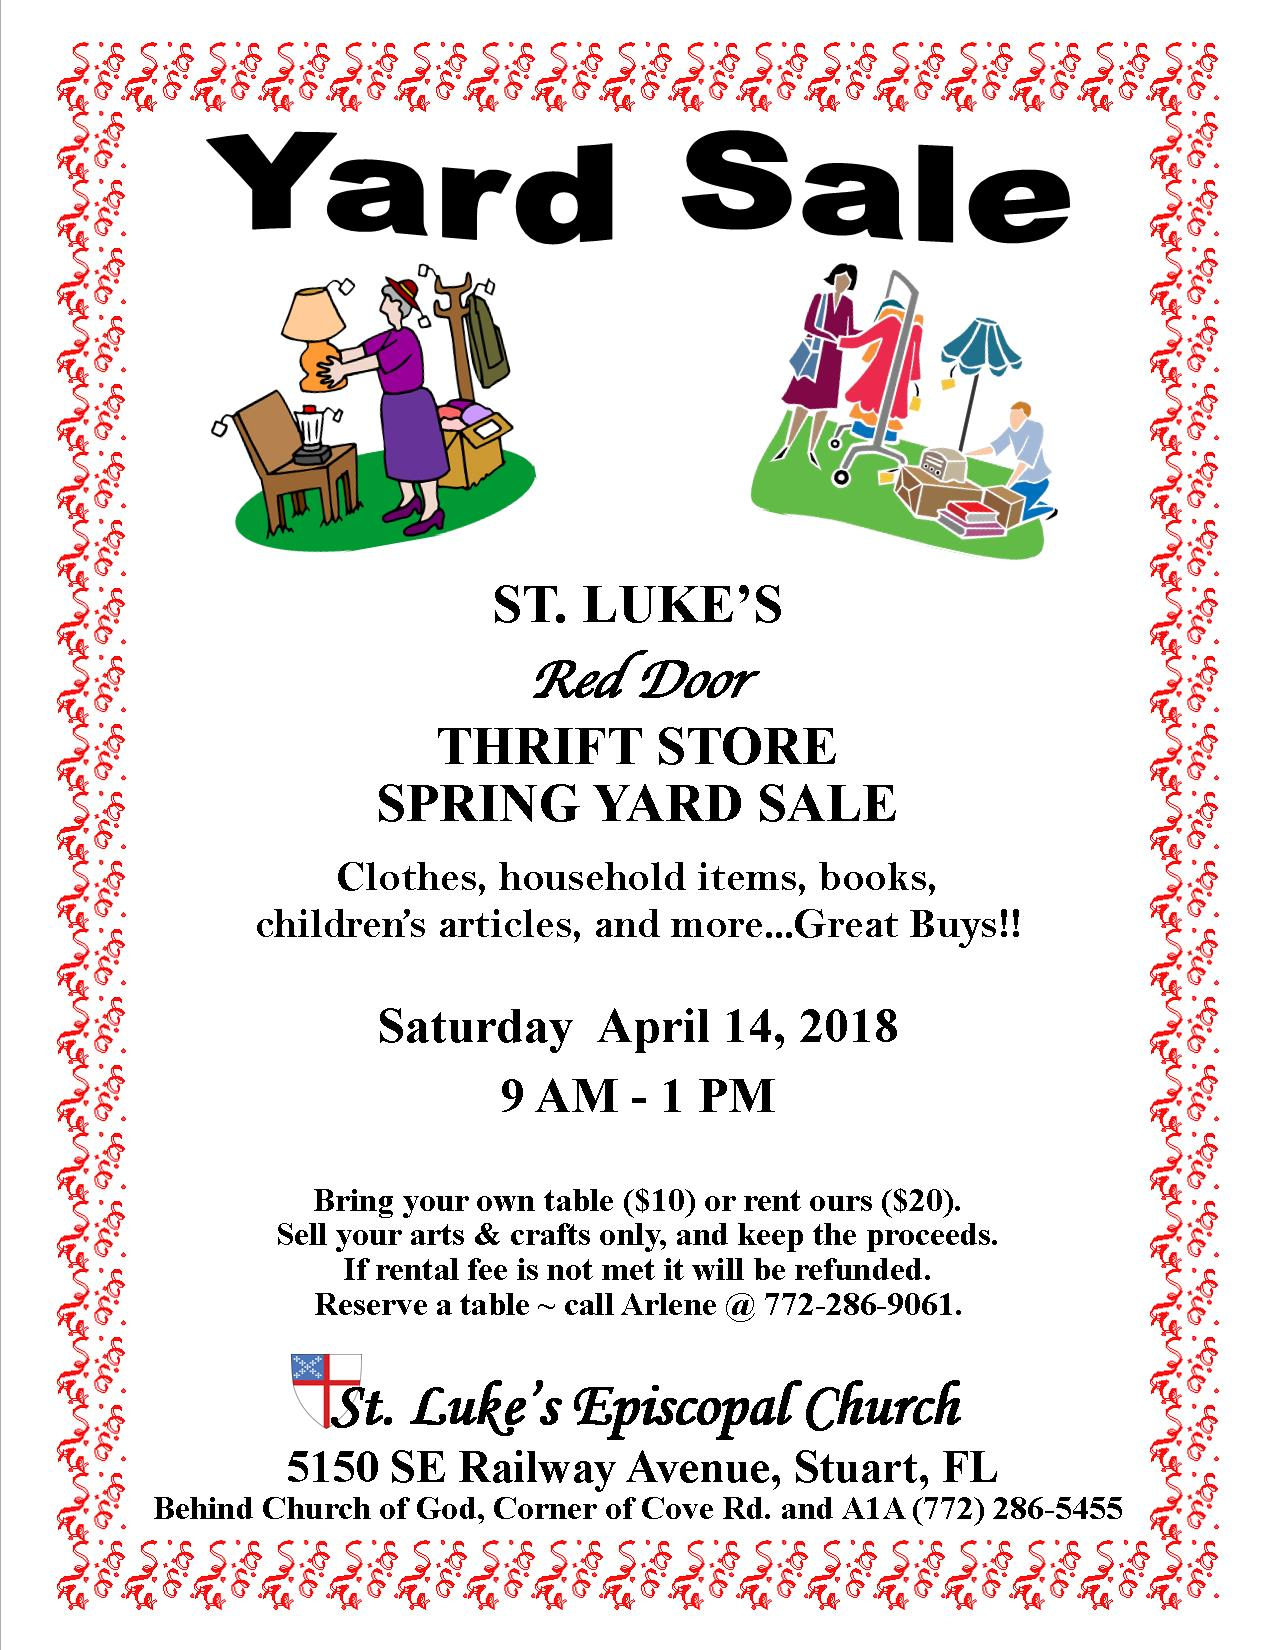 St Lukes Red Door Thrift Store Spring Yard Sale Martin County